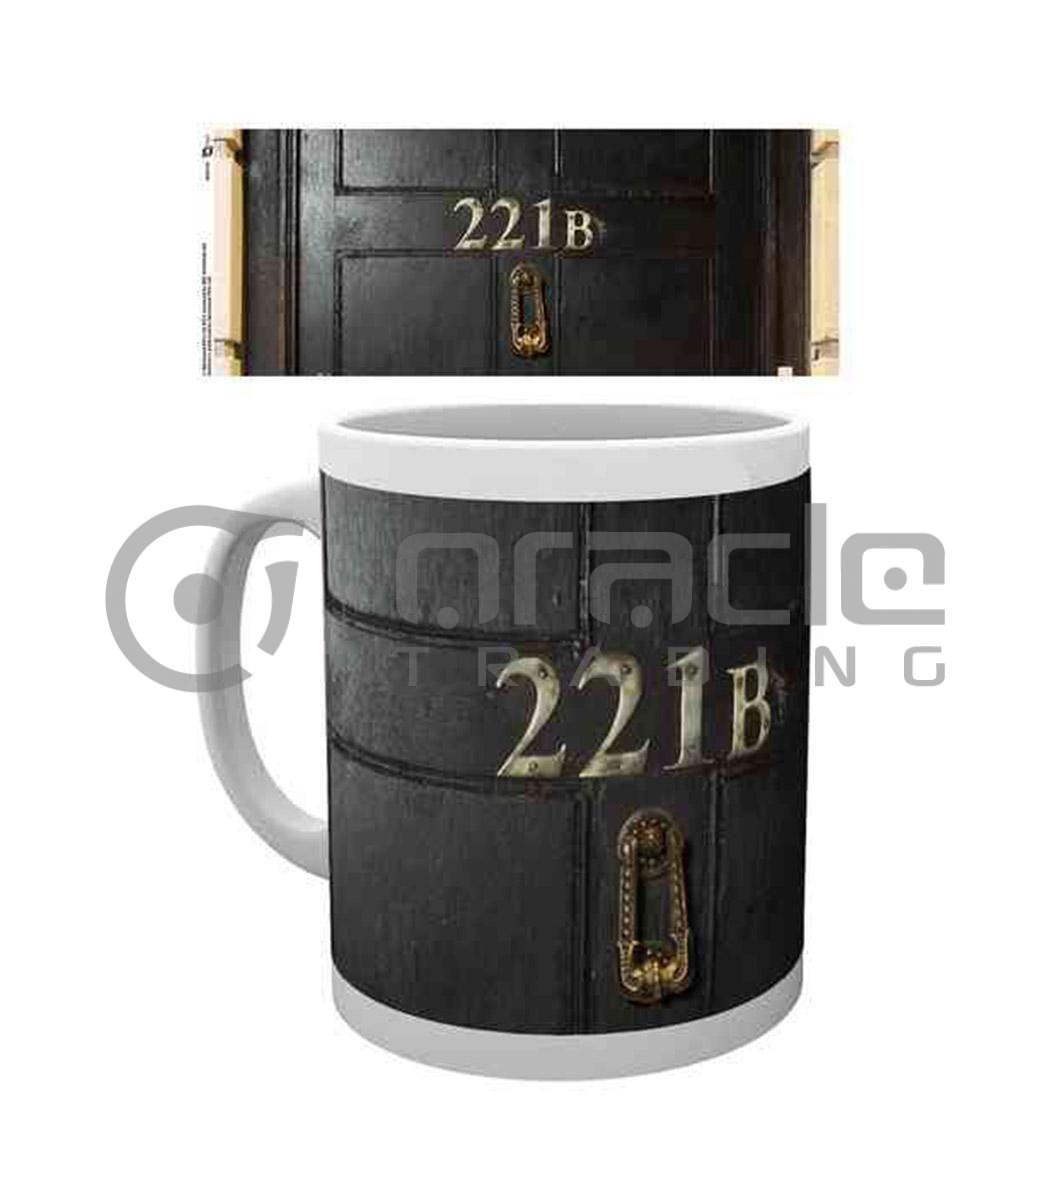 Sherlock 221B Coffee Mug